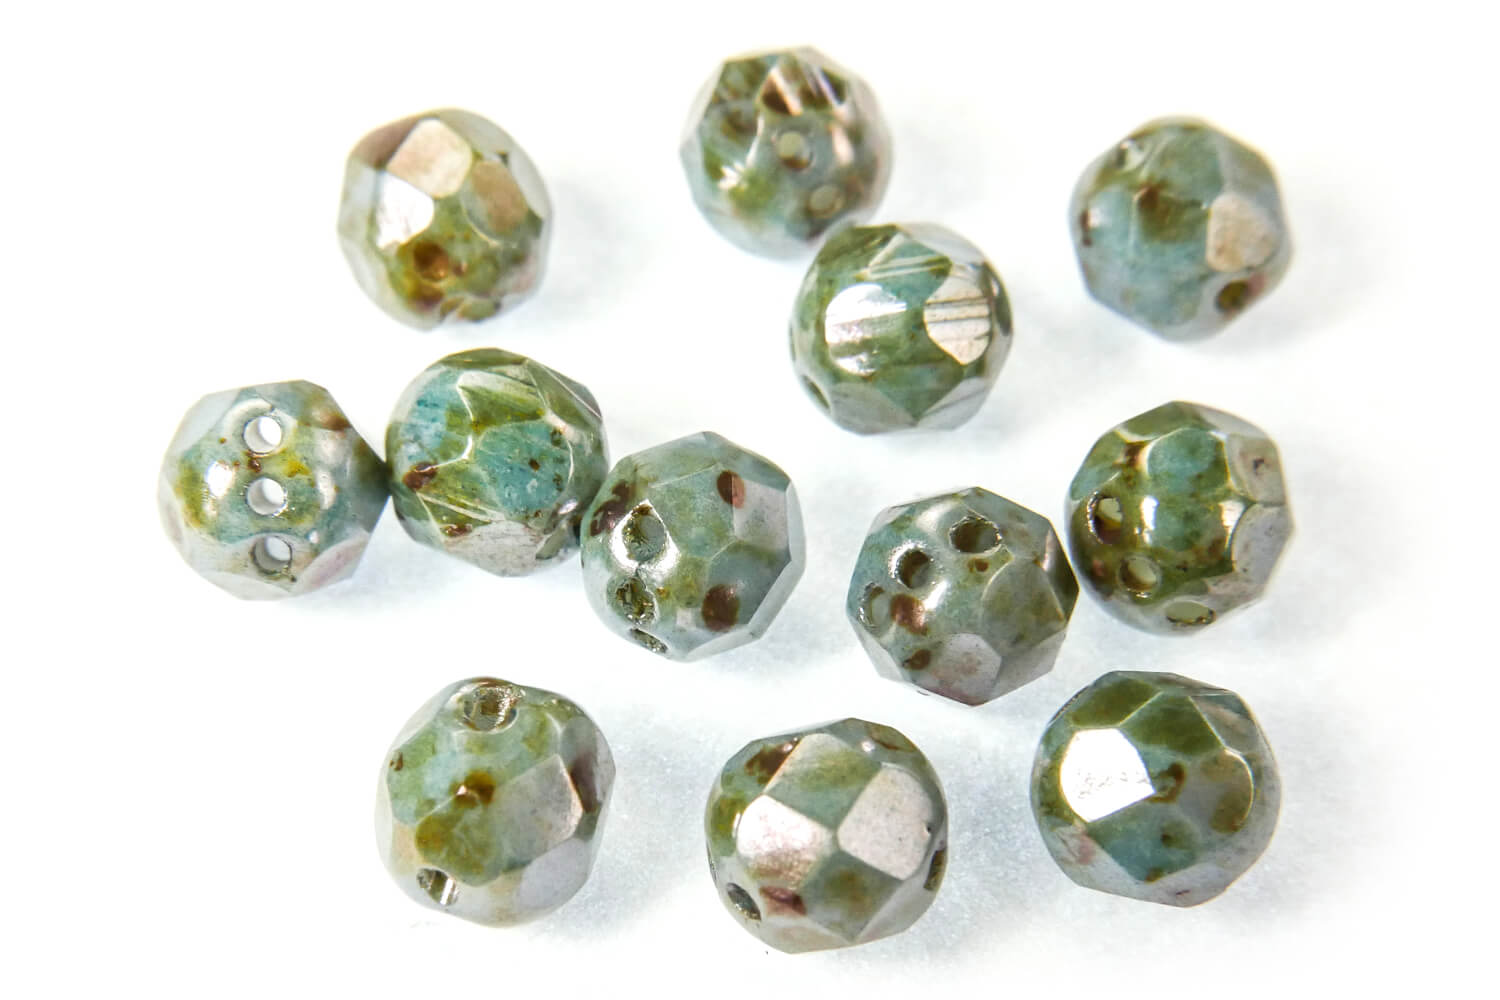 Potomac Exclusives / RounTrio® Faceted Beads